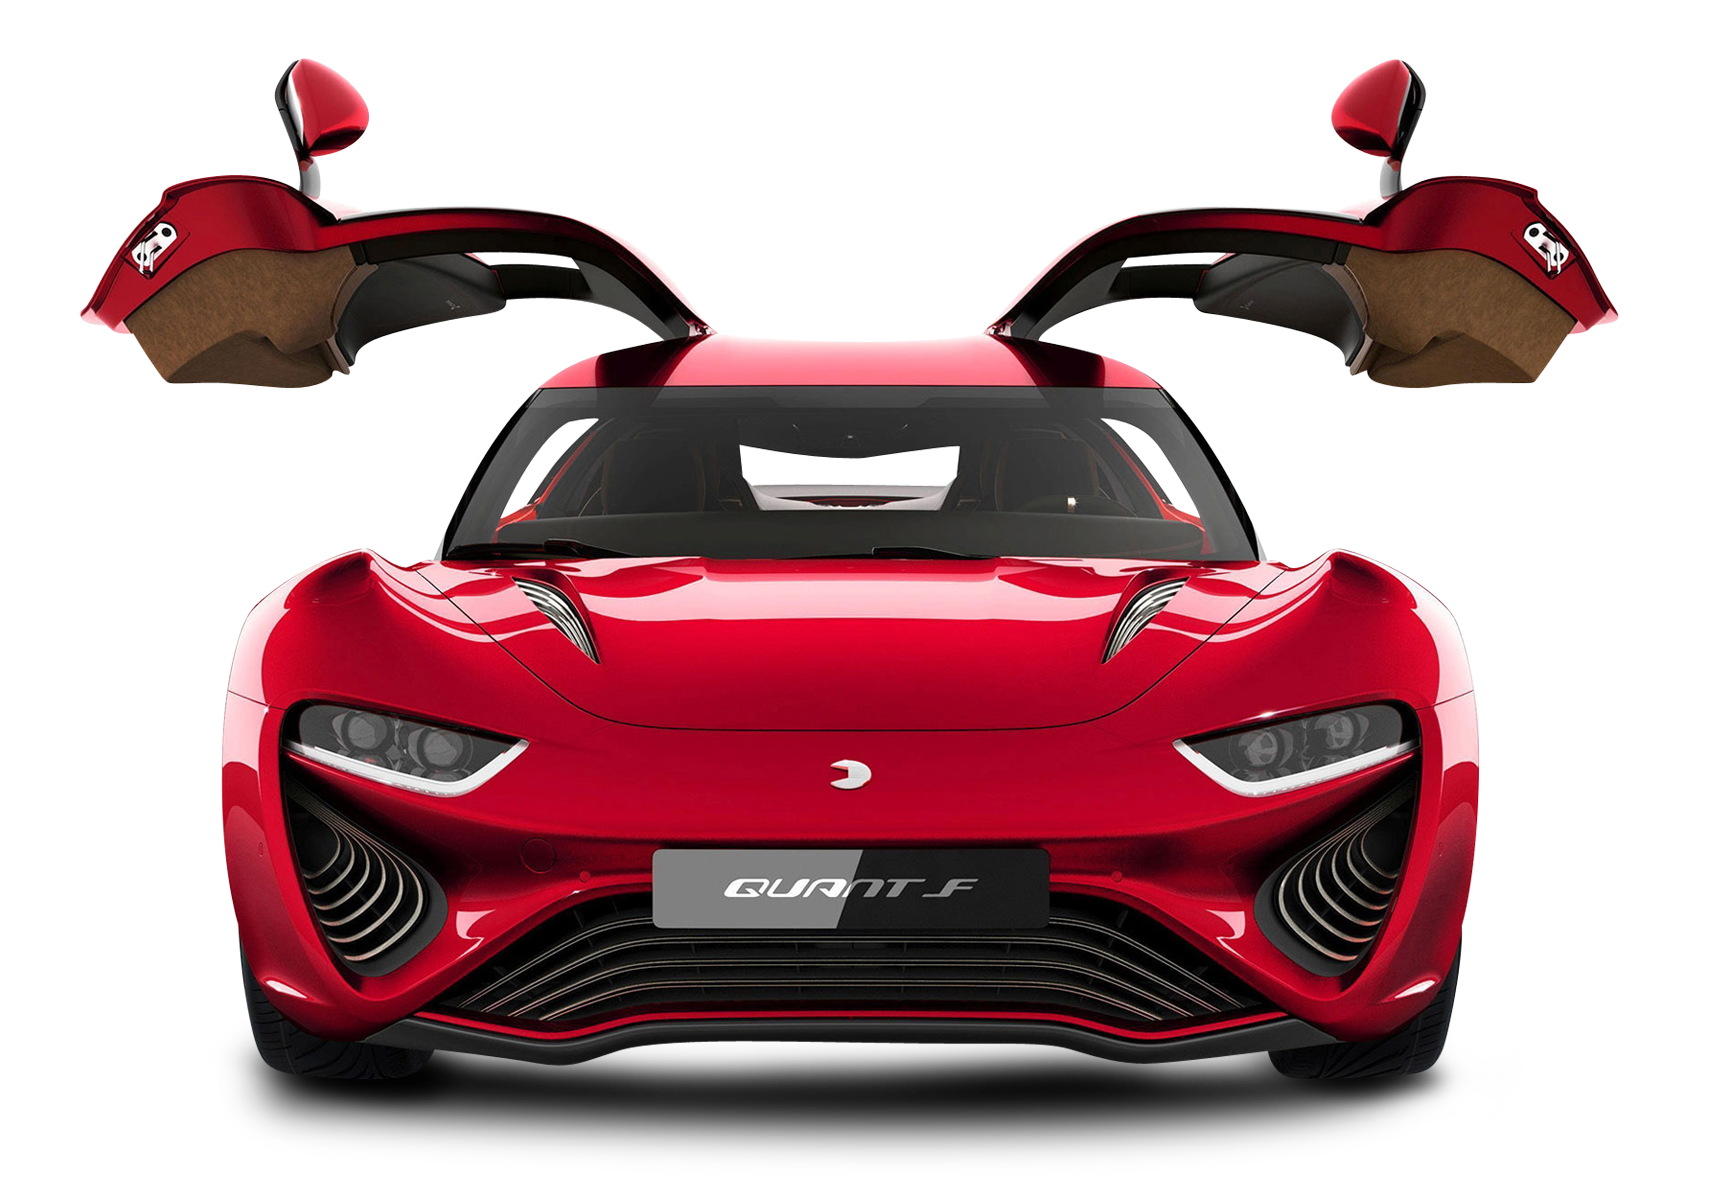 Red NanoFlowcell Quant F Modern Car PNG Image - PurePNG | Free ...